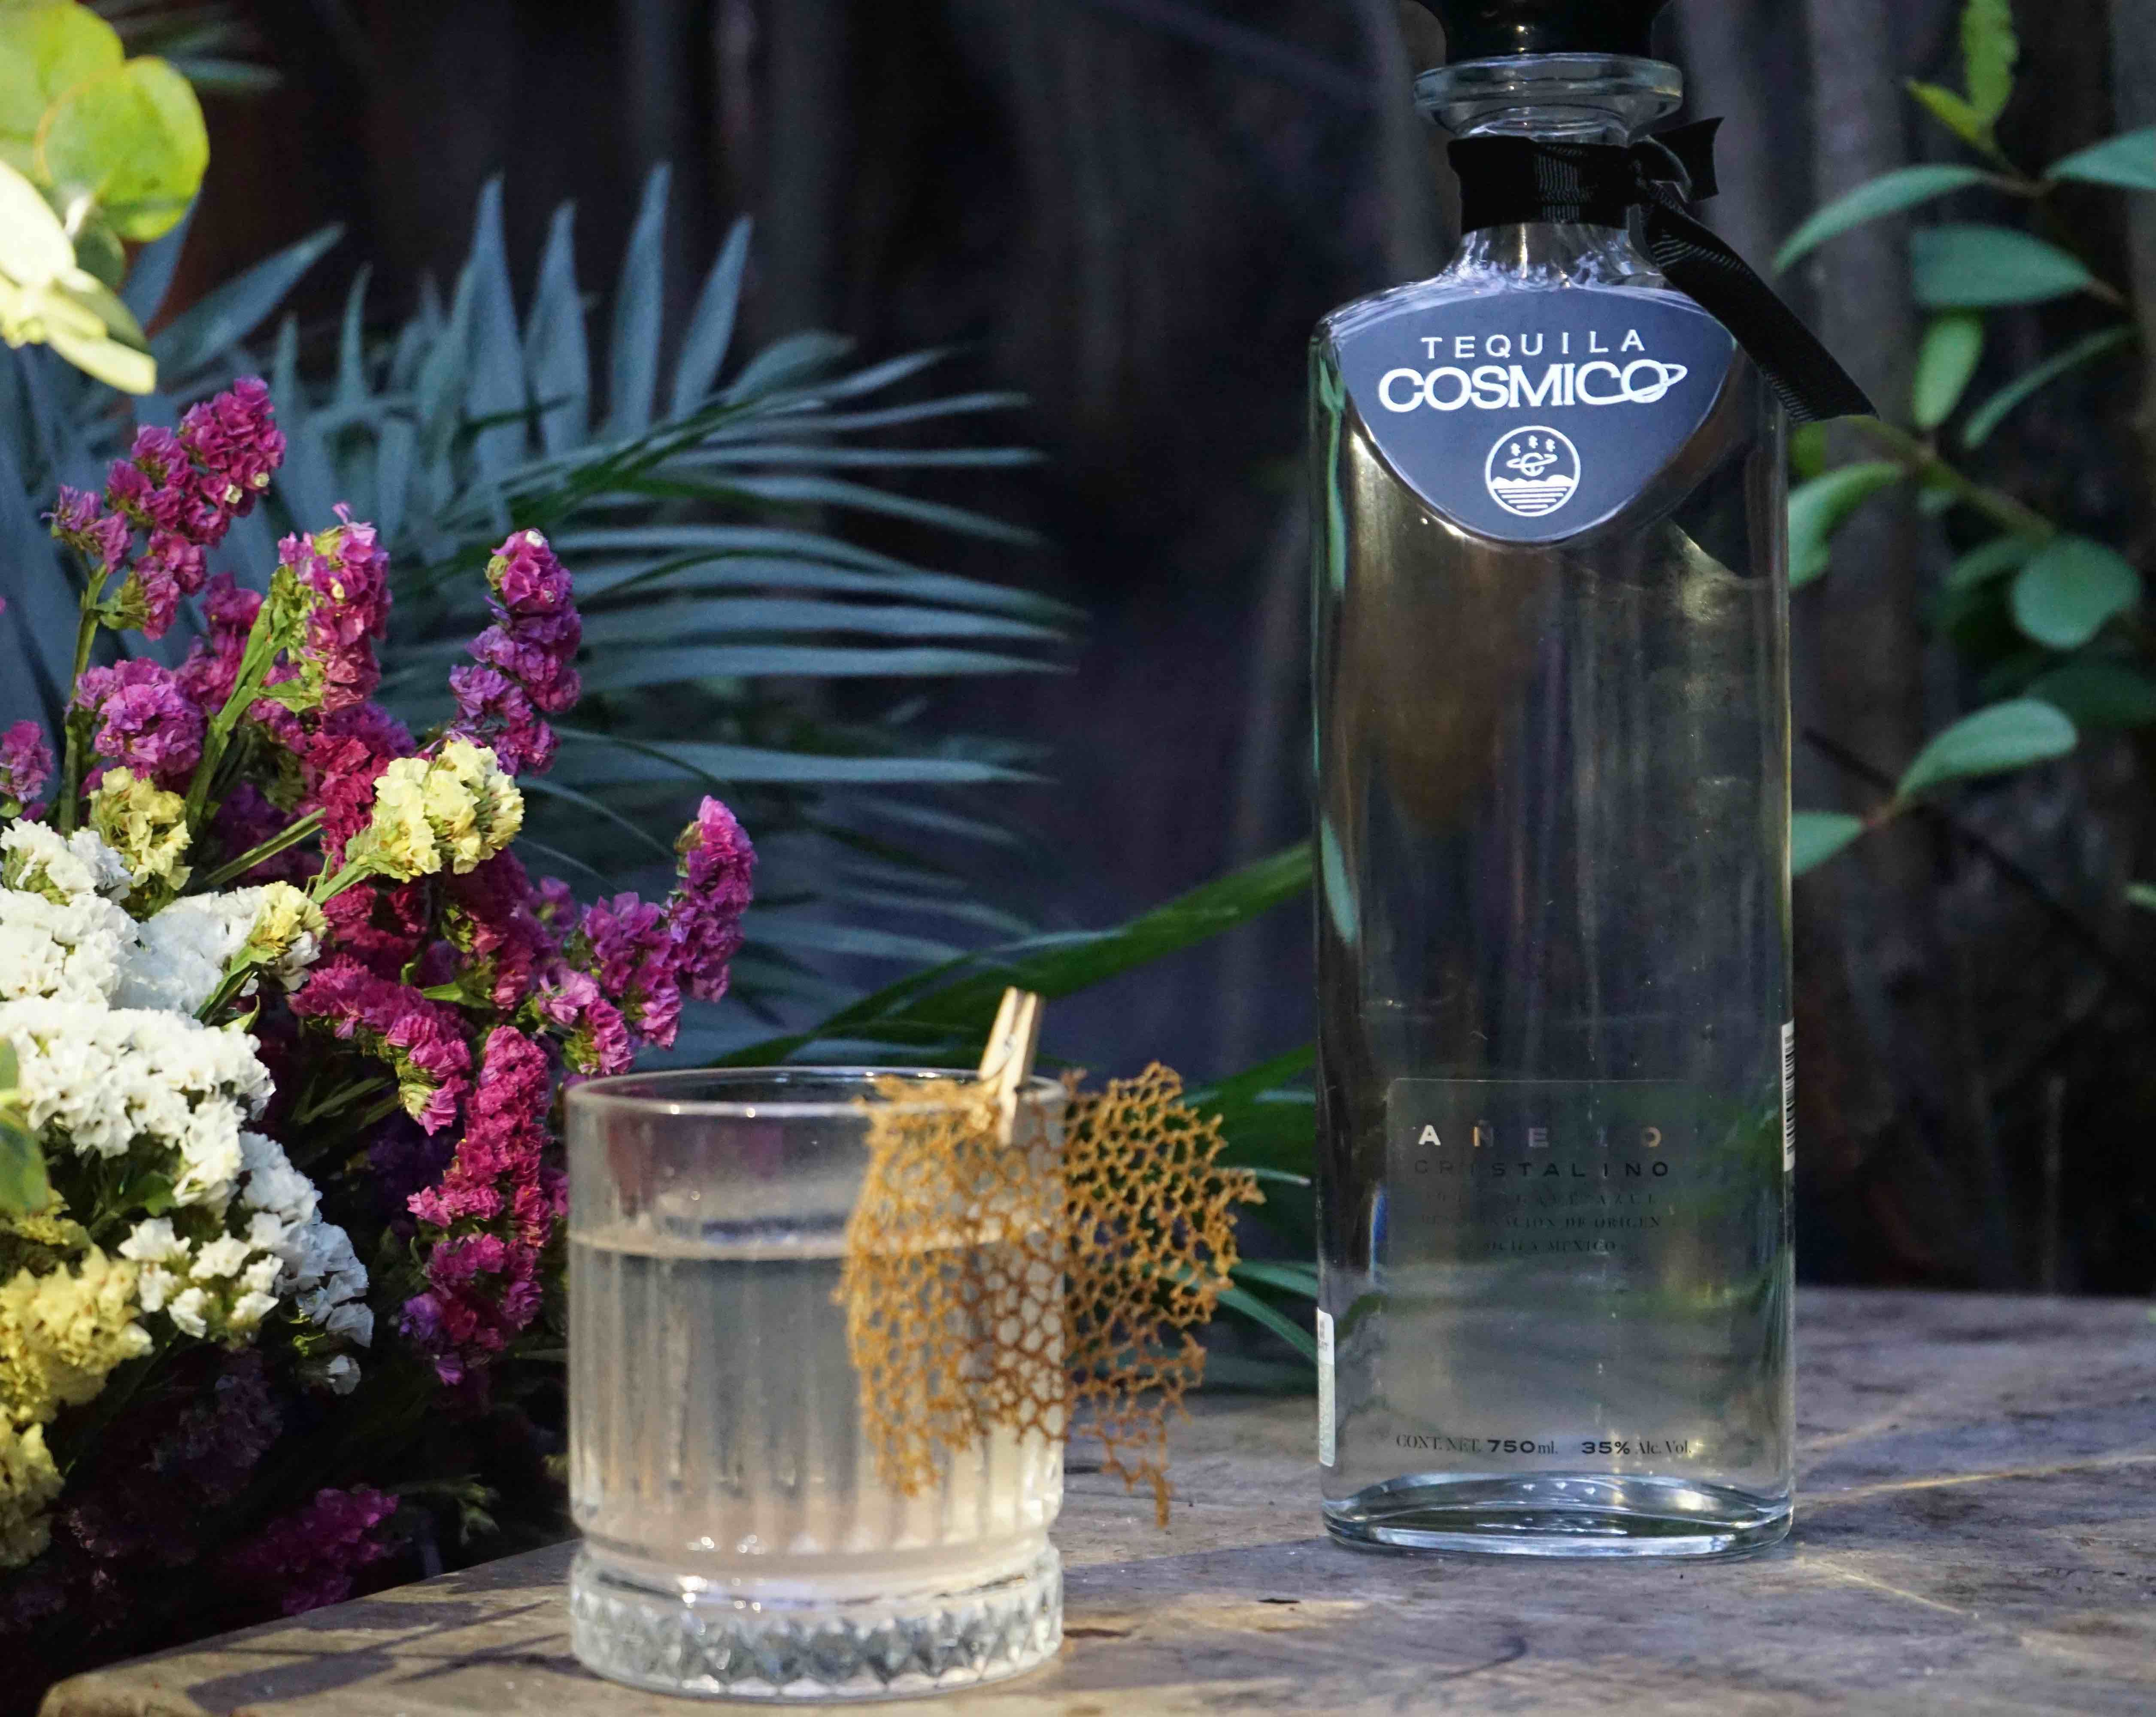 Tequila Cosmos